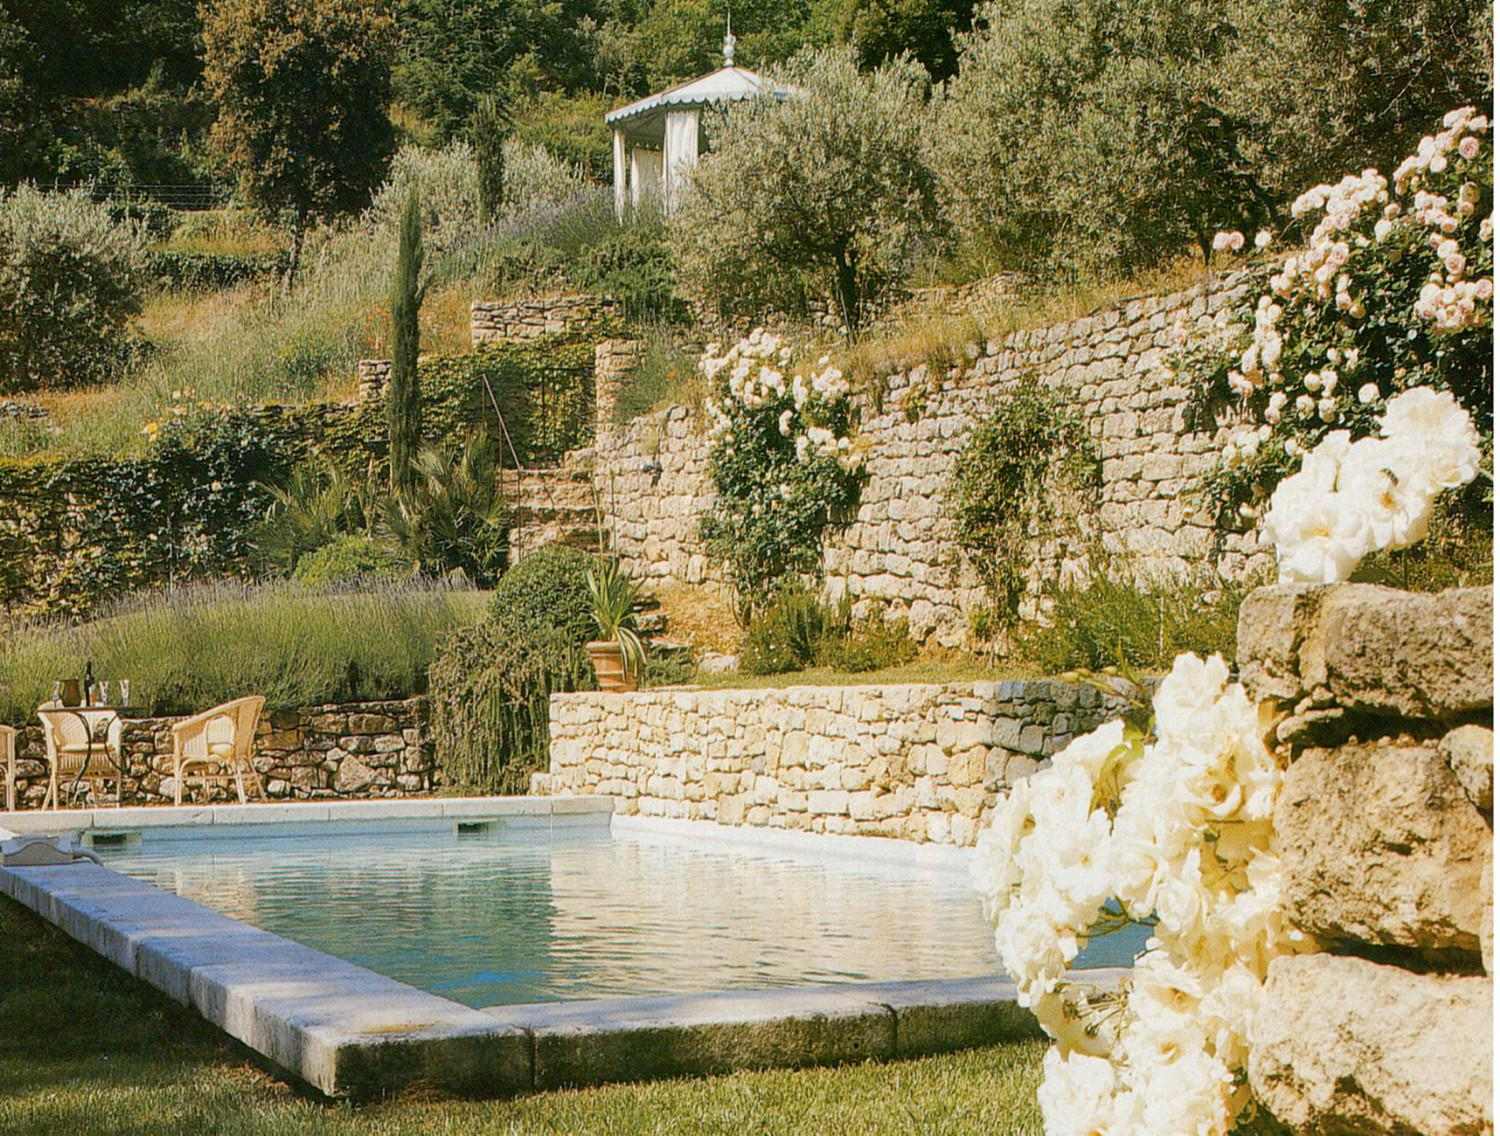 Pools pool houses pools and pool houses a nelson architect landsc - Pool house provencal ...